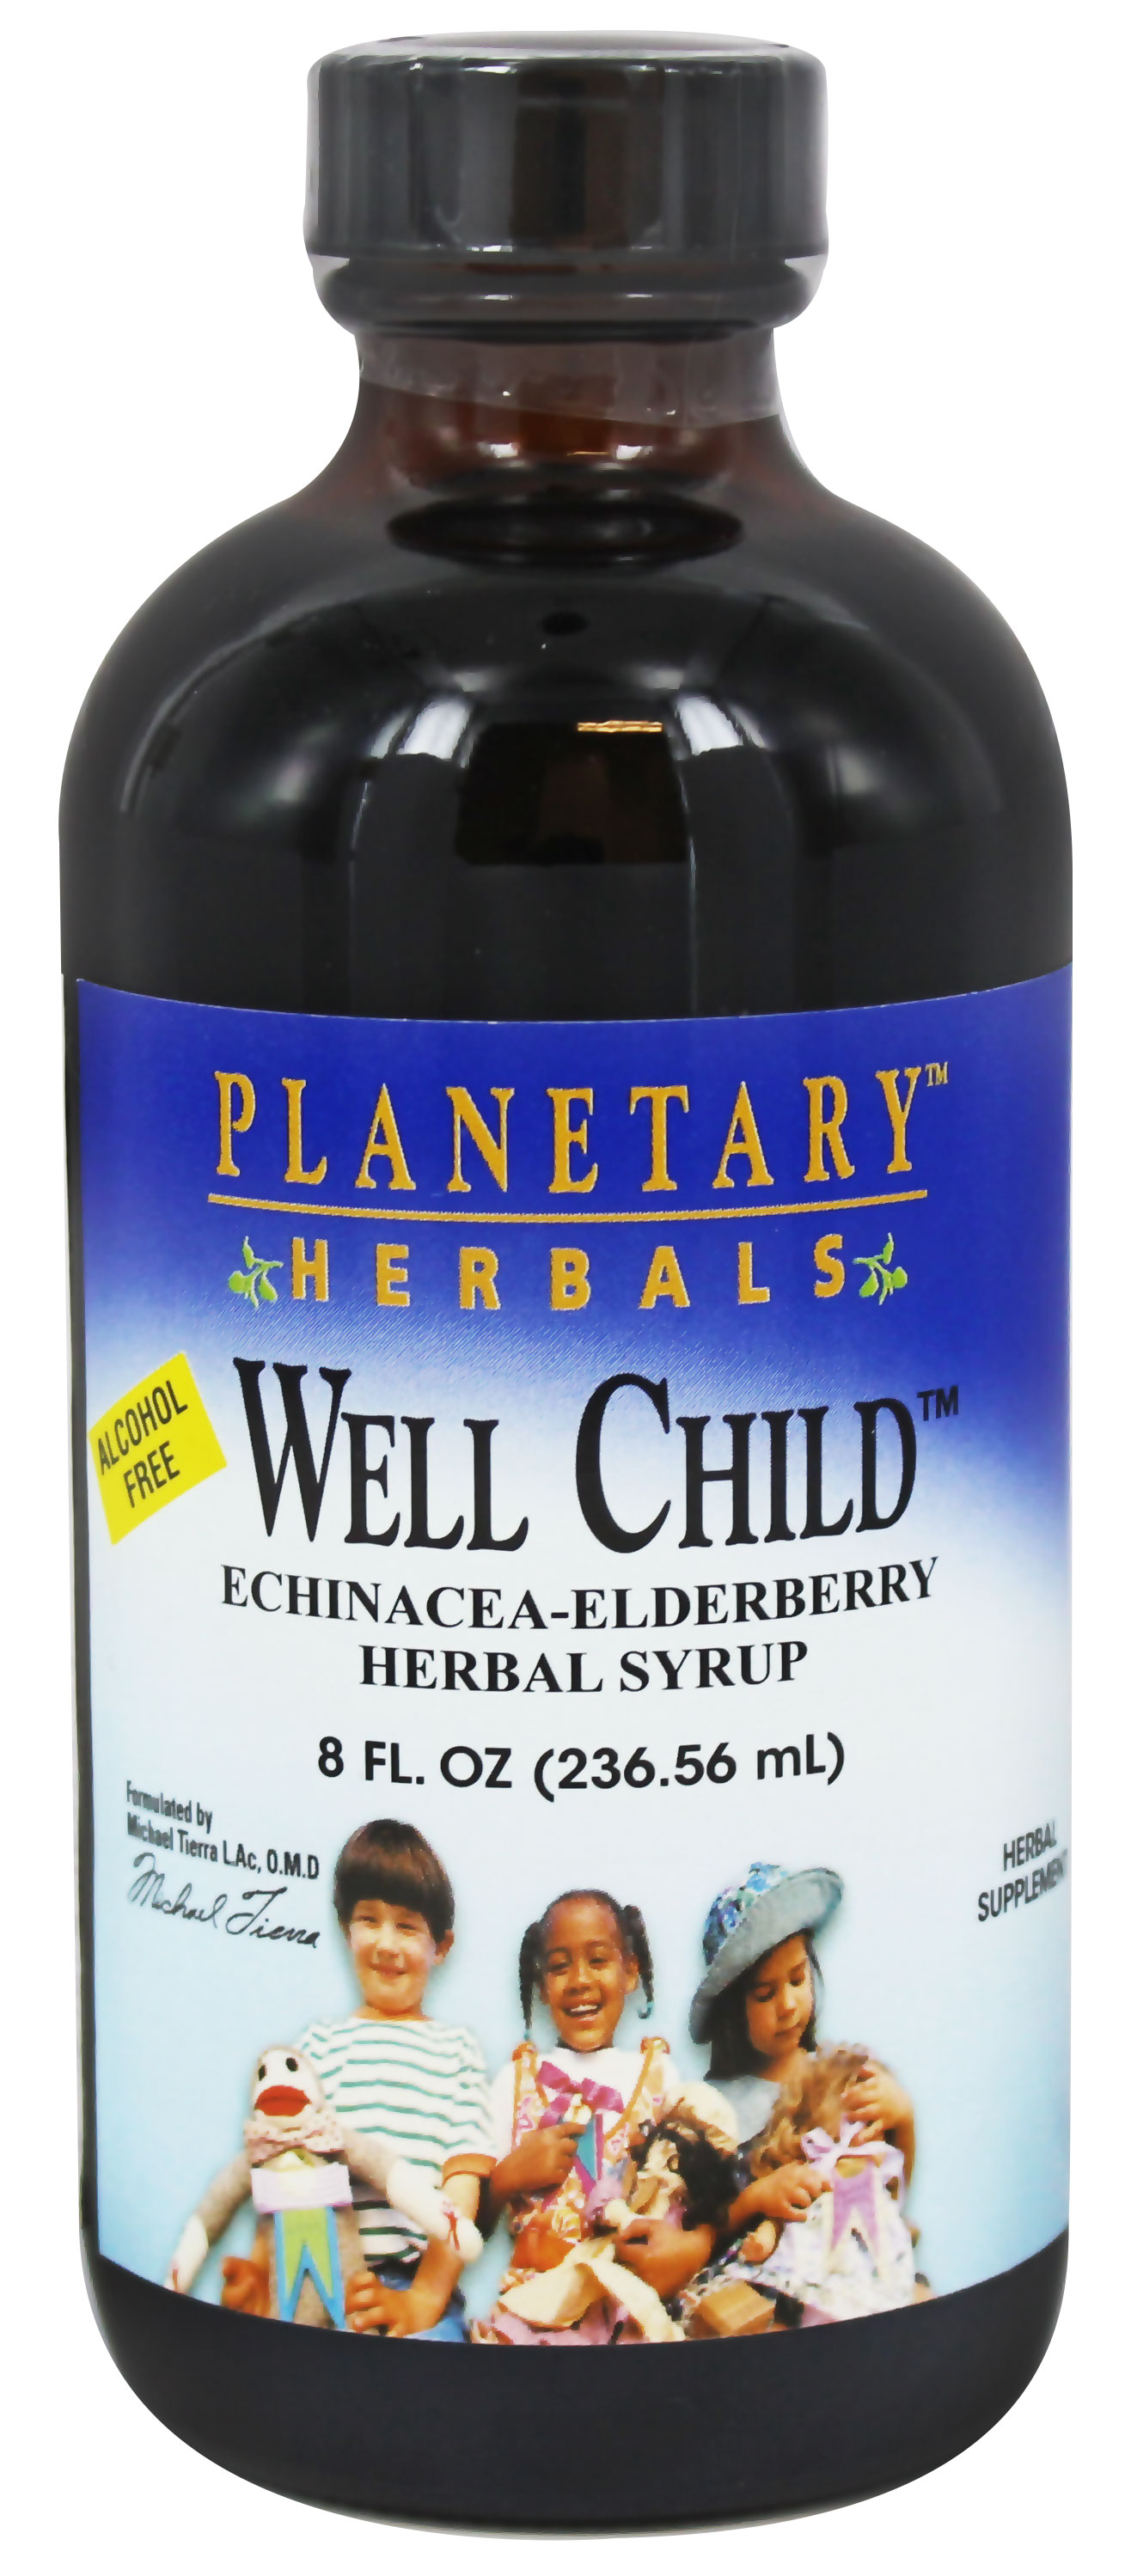 Planetary Herbals - Well Child Echinacea-Elderberry Herbal Syrup - 8 oz.